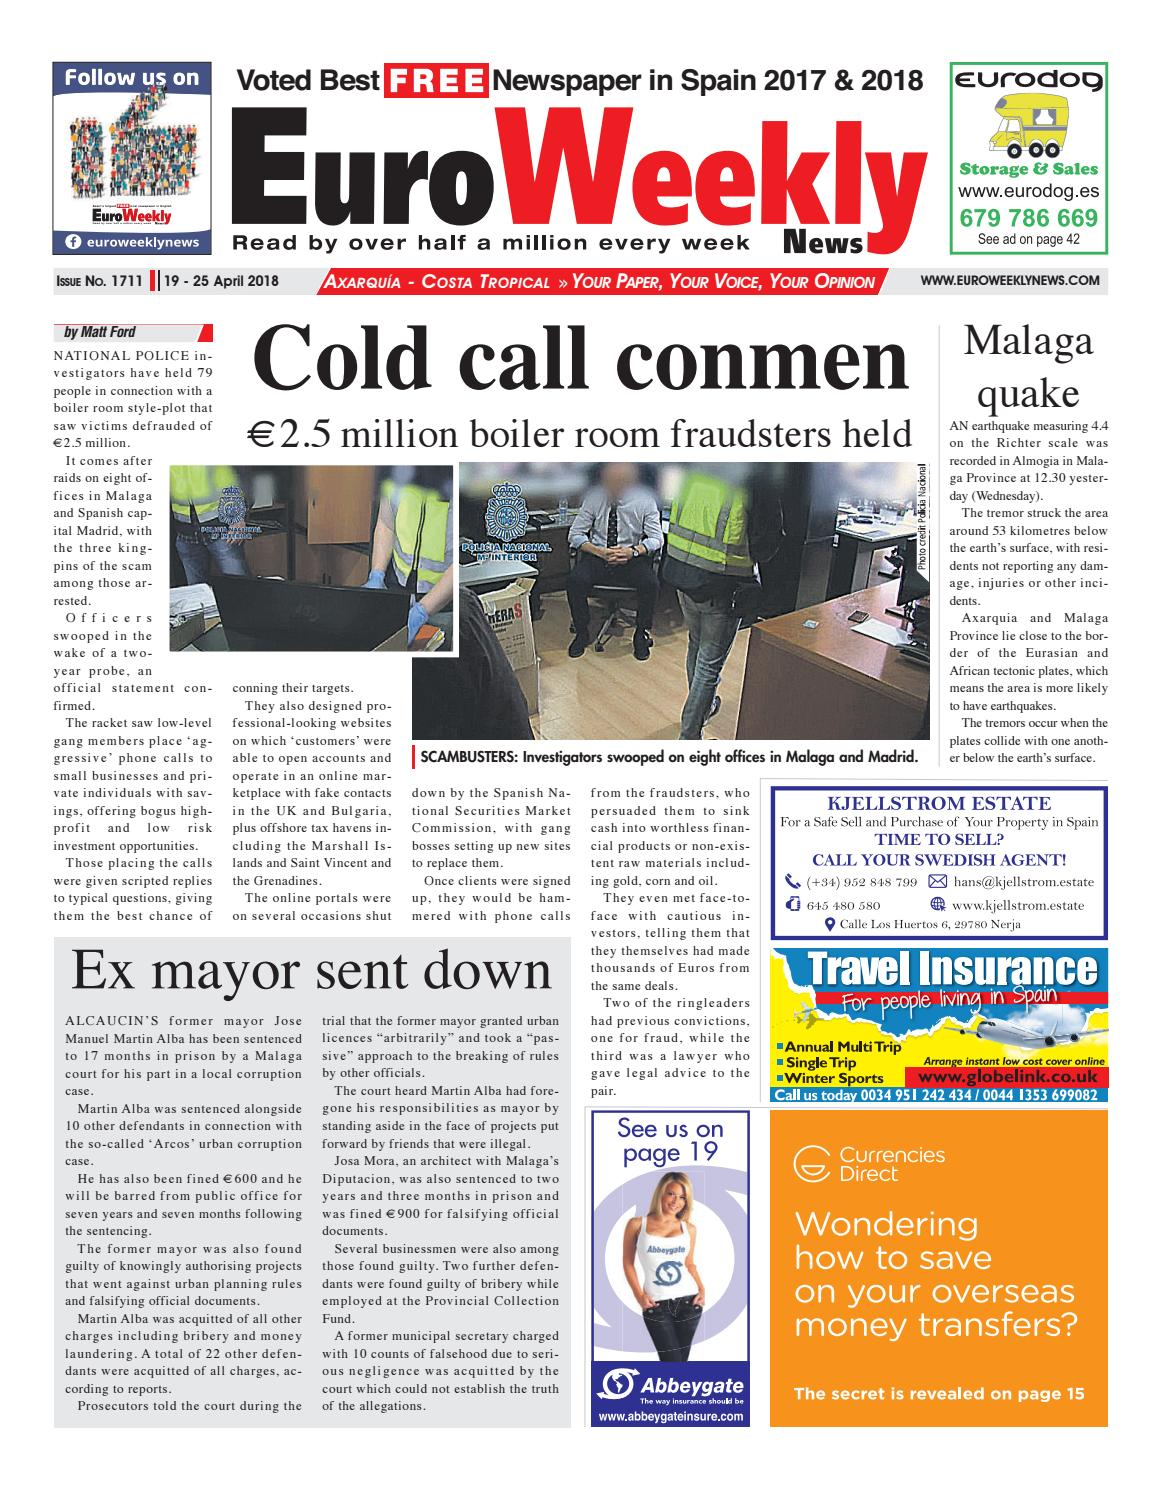 Euro Weekly News Axarquia 19 25 April 2018 Issue 1711 By Euro Weekly News Media S A Issuu